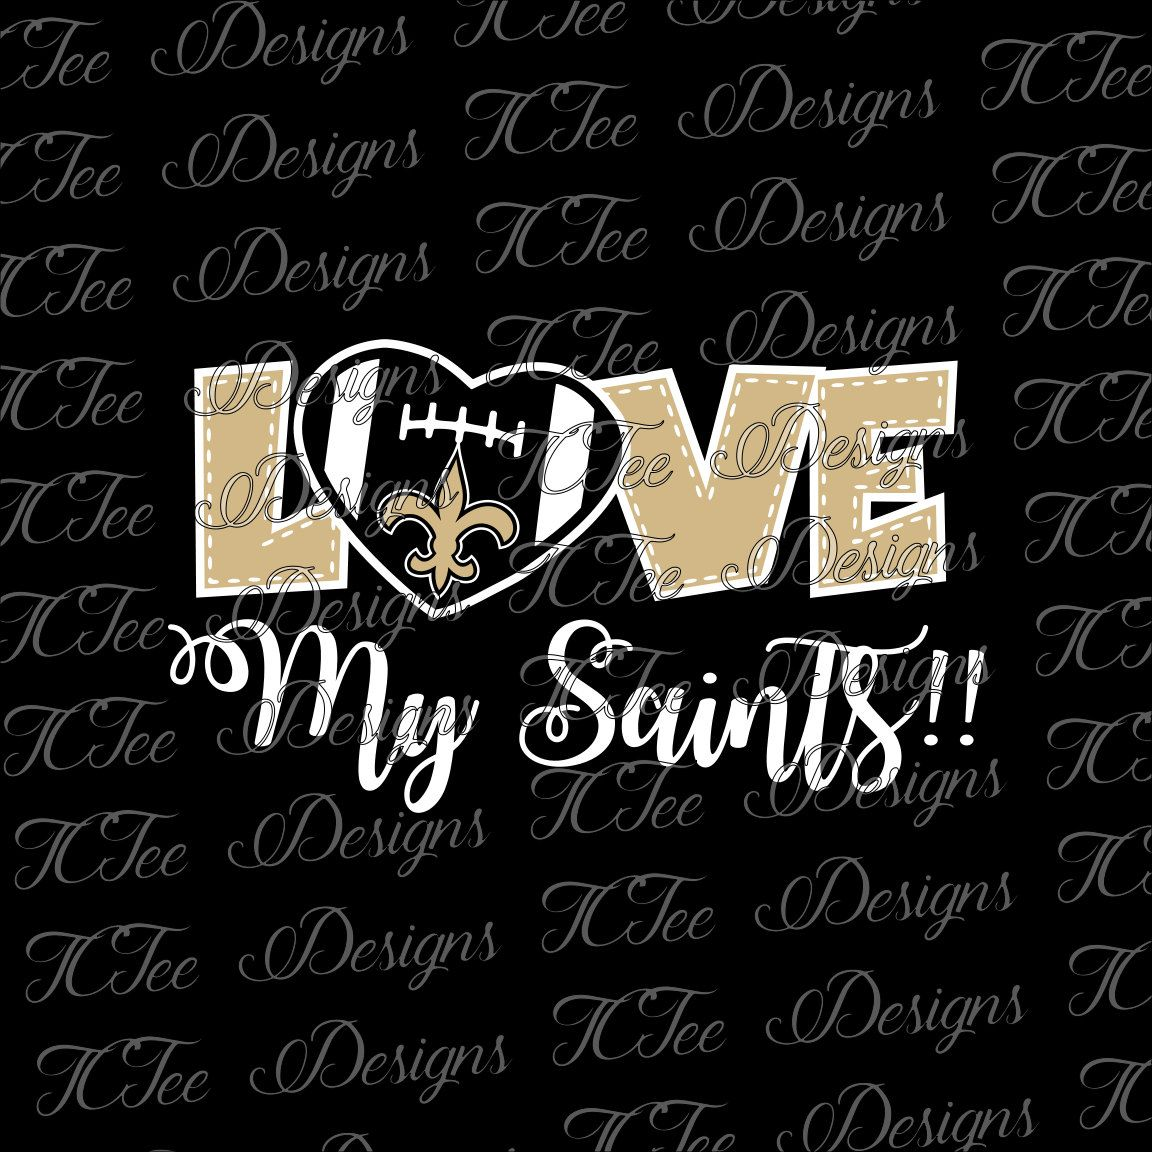 Love My Saints - New Orleans Saints - Football SVG File - Vector Design Download - Cut File by TCTeeDesigns on Etsy